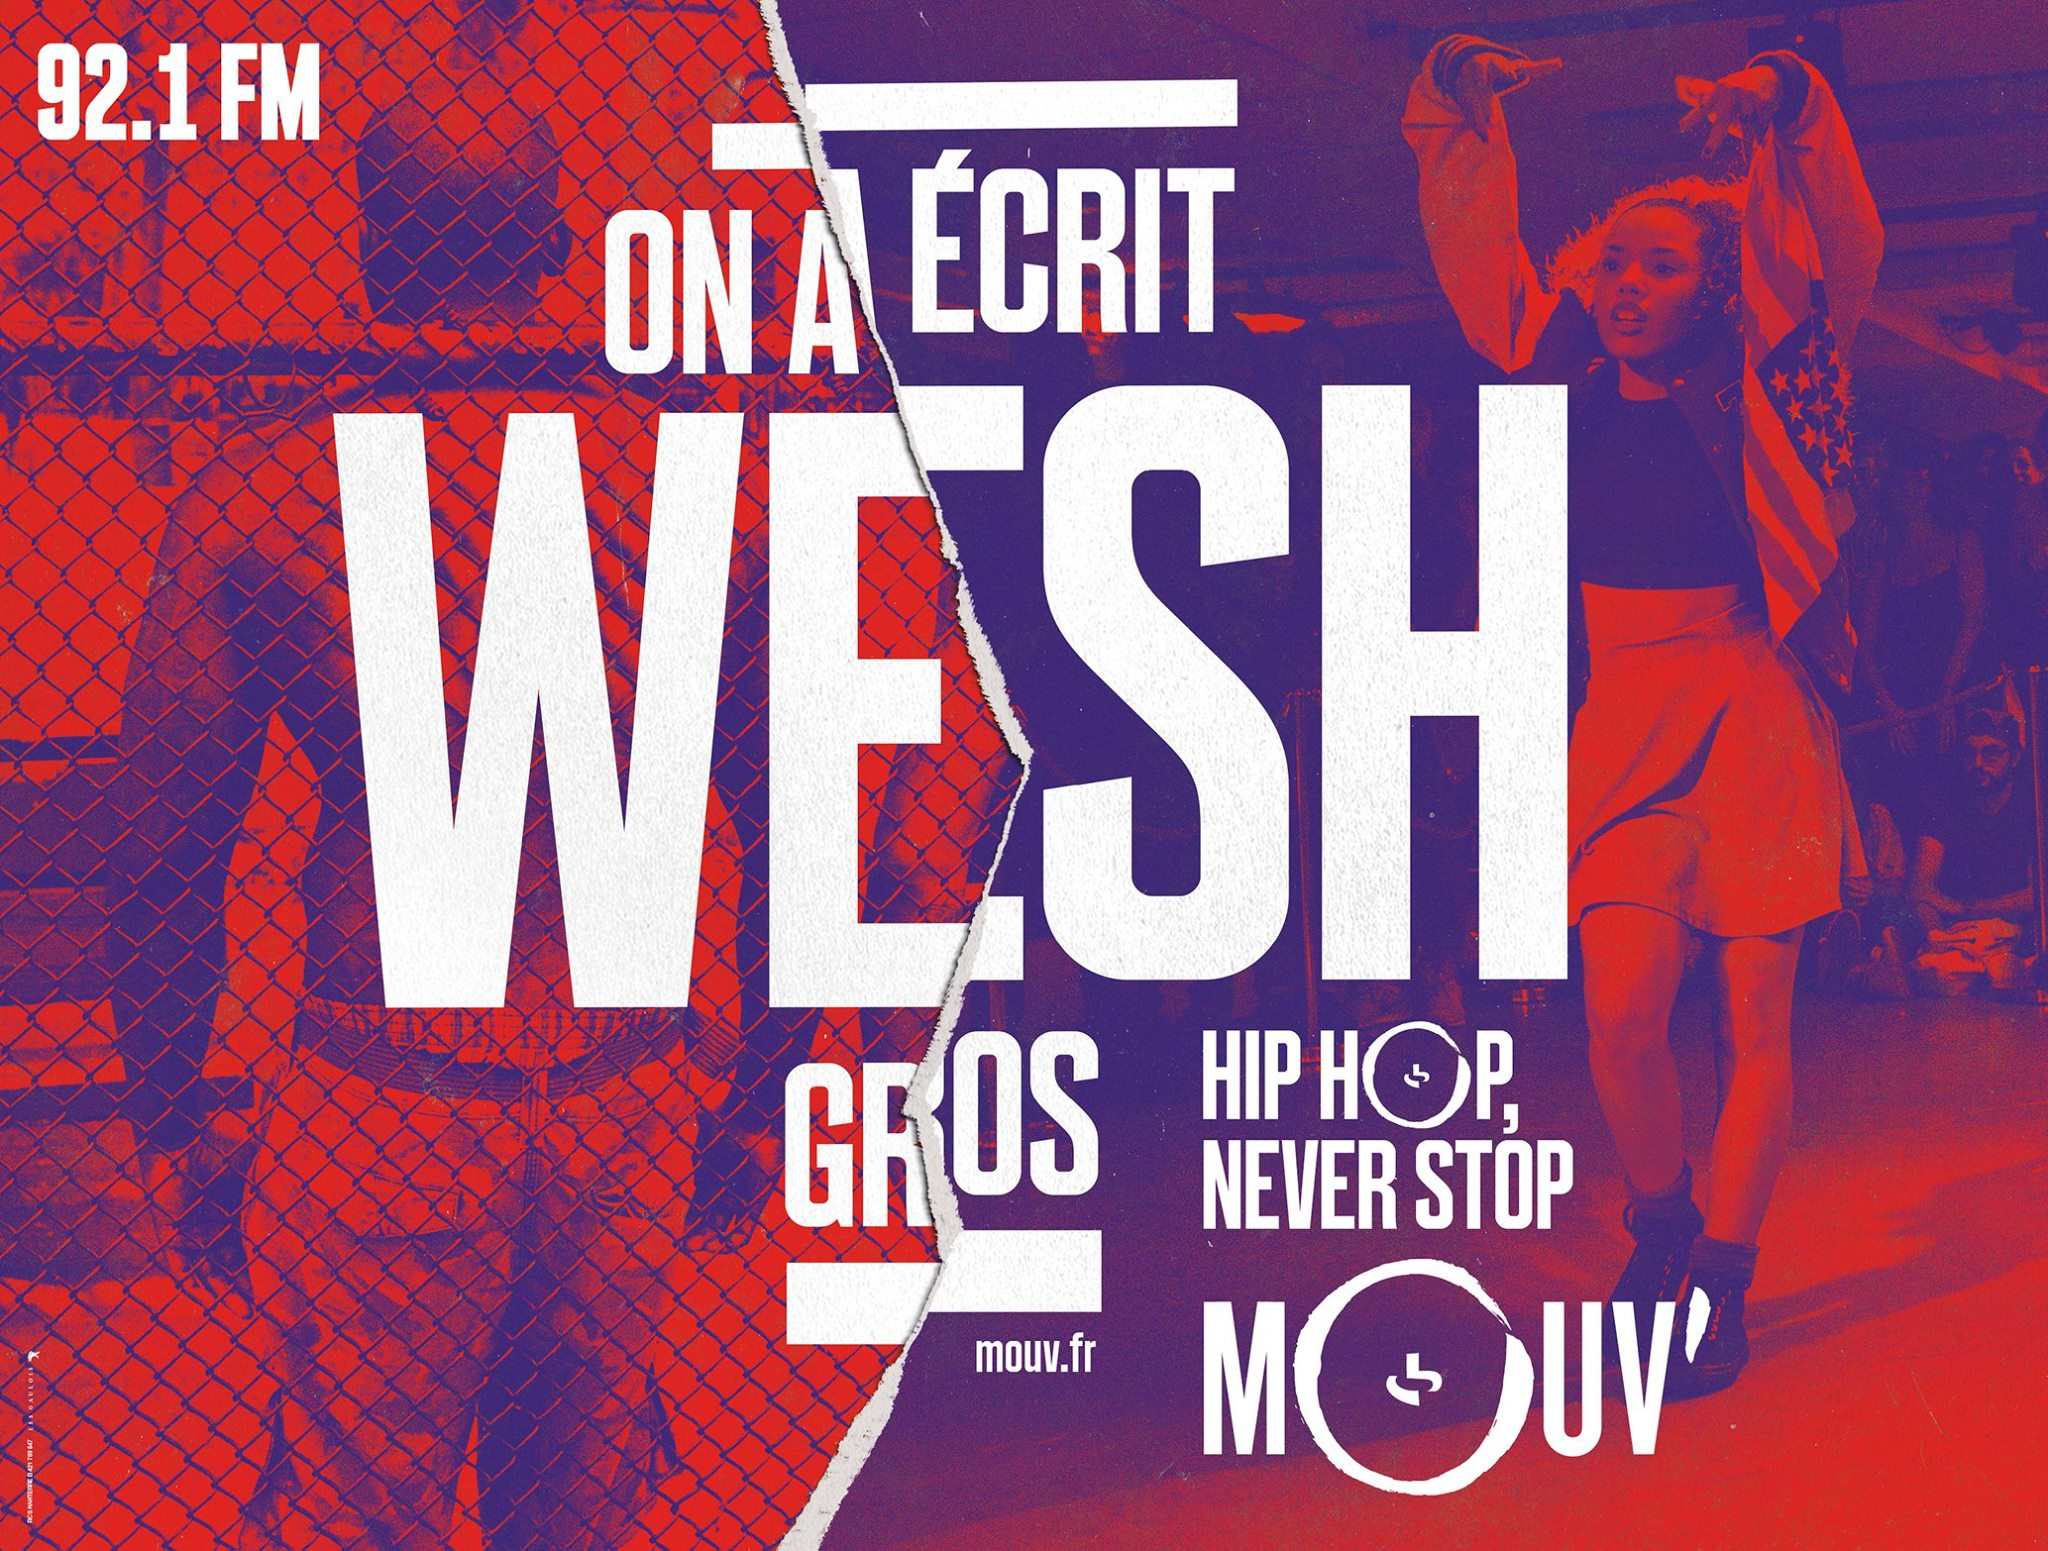 mouv-radio-hip-hop-rap-publicite-marketing-affiche-rimes-paroles-novembre-2015-agence-les-gaulois-havas-5